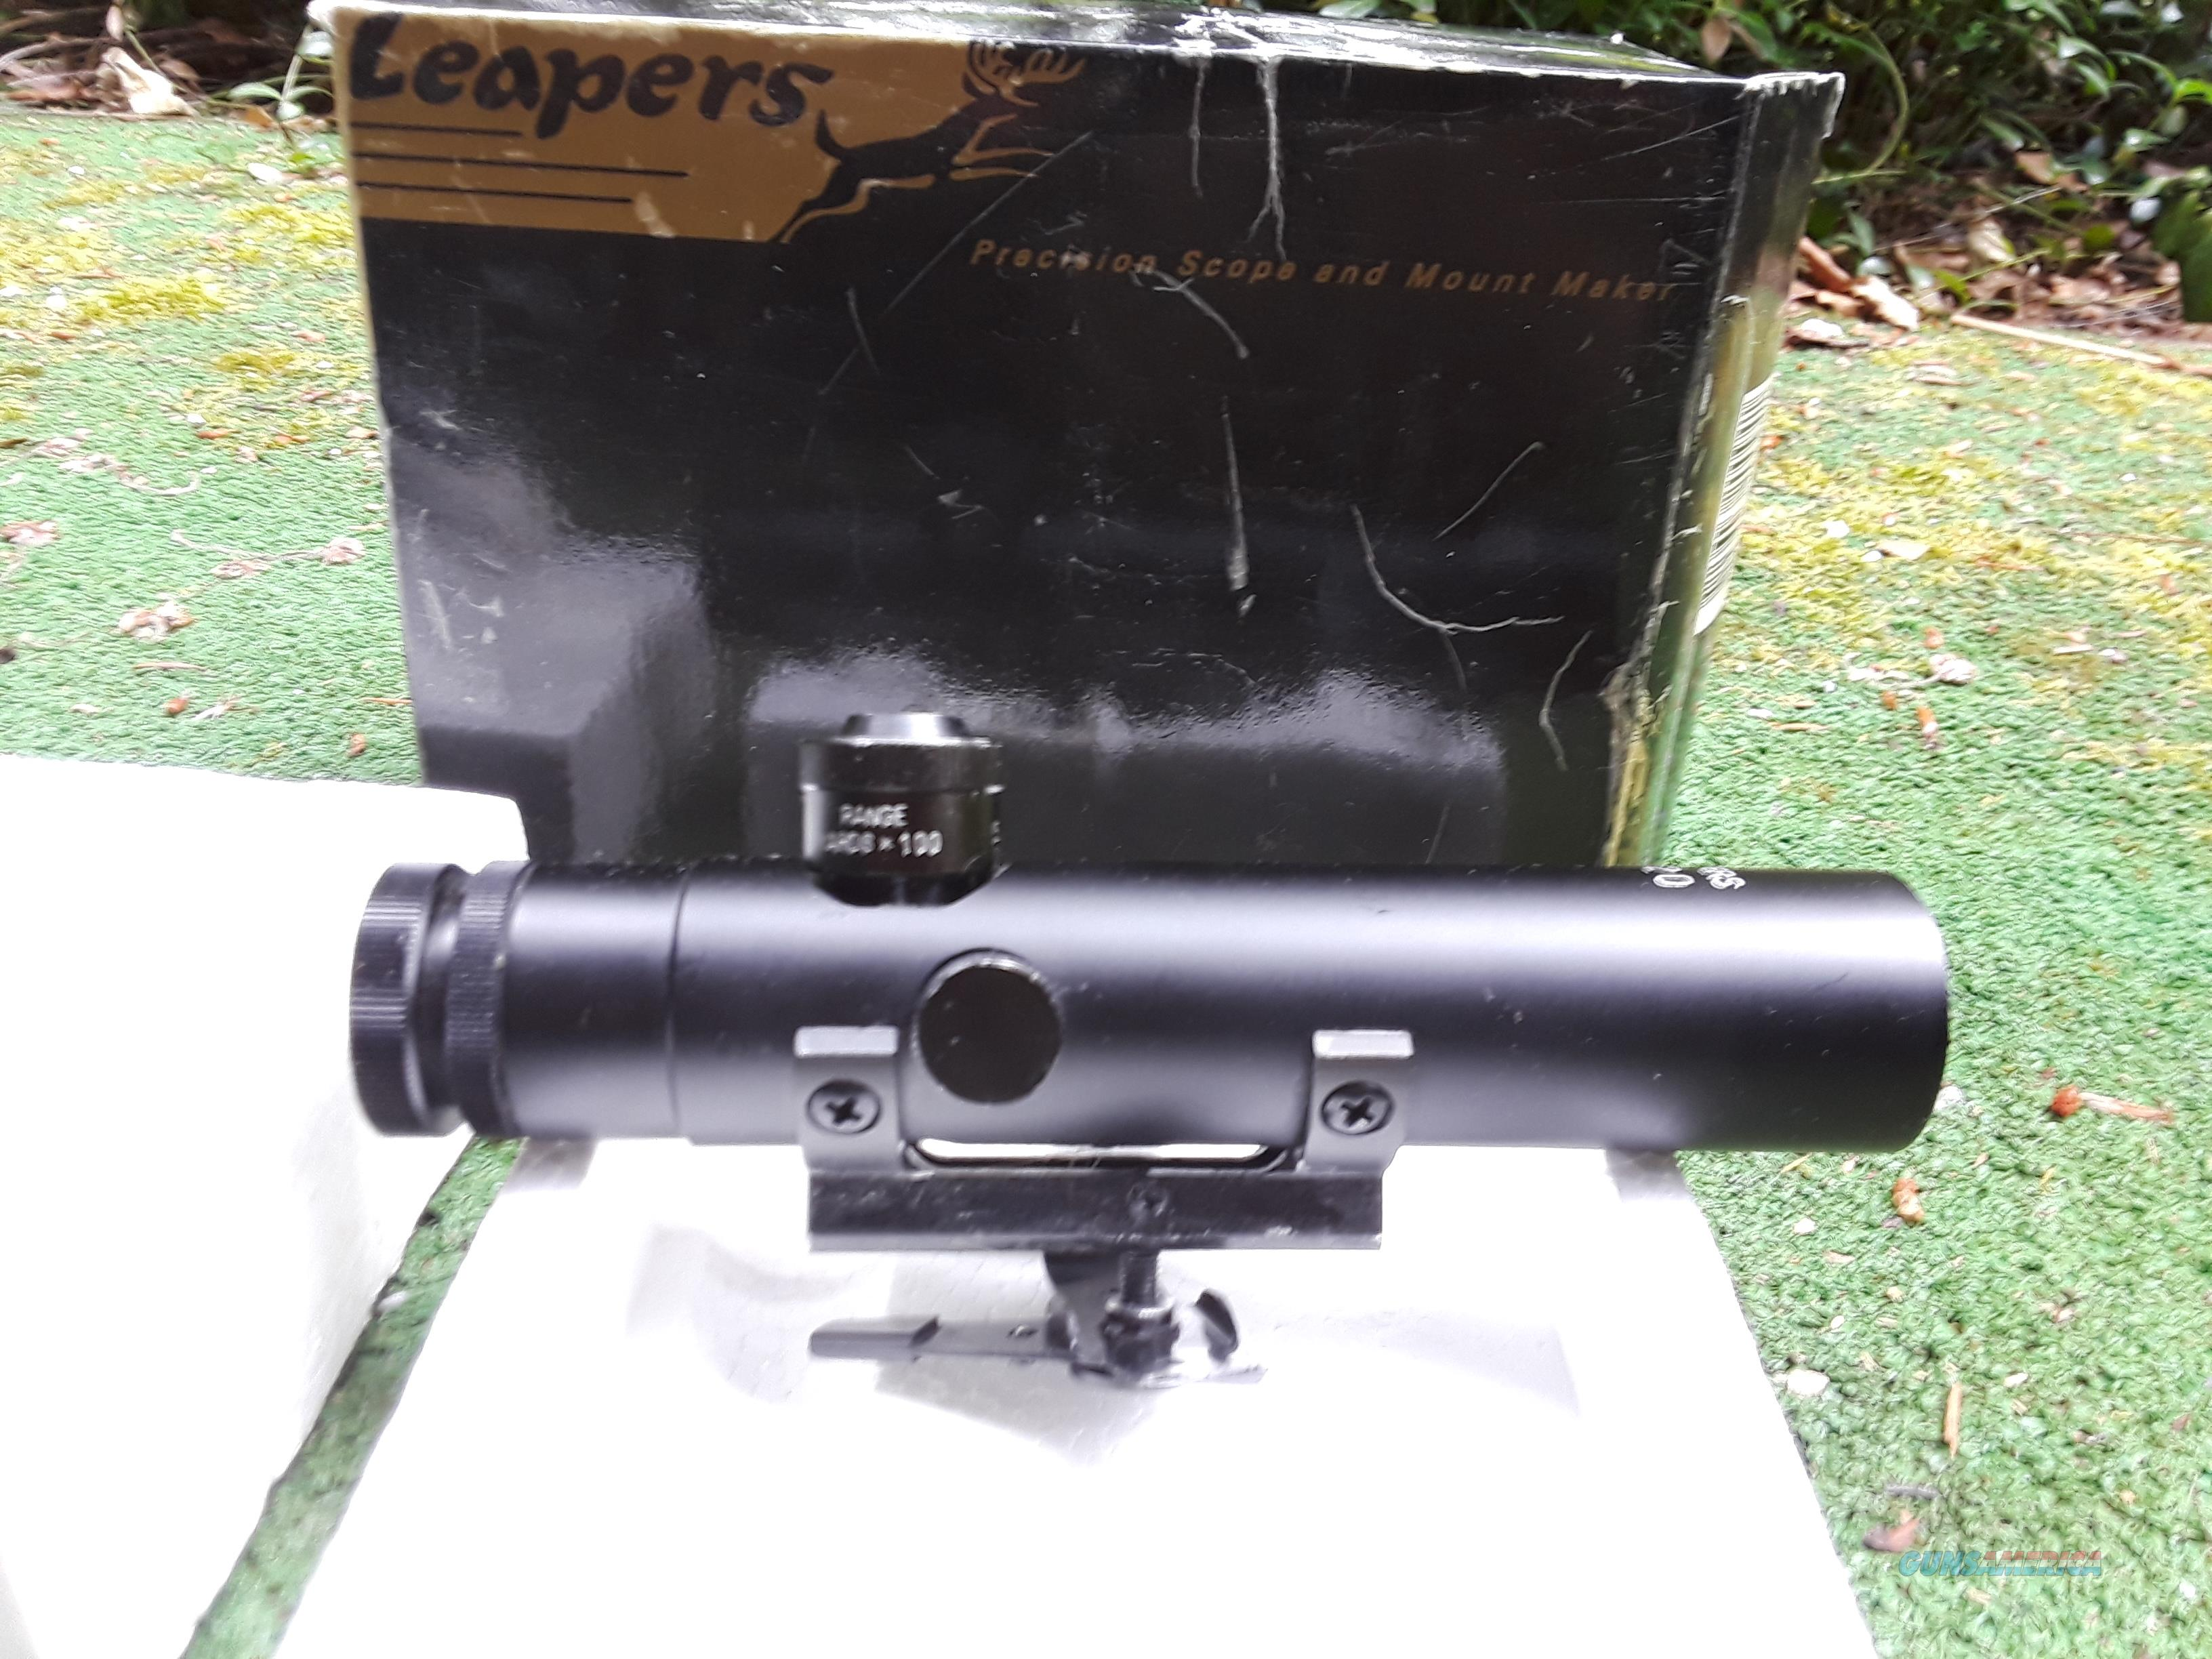 Leapers AR-15 4X20 Handle Scope with Box & Manual  Non-Guns > Scopes/Mounts/Rings & Optics > Rifle Scopes > Fixed Focal Length